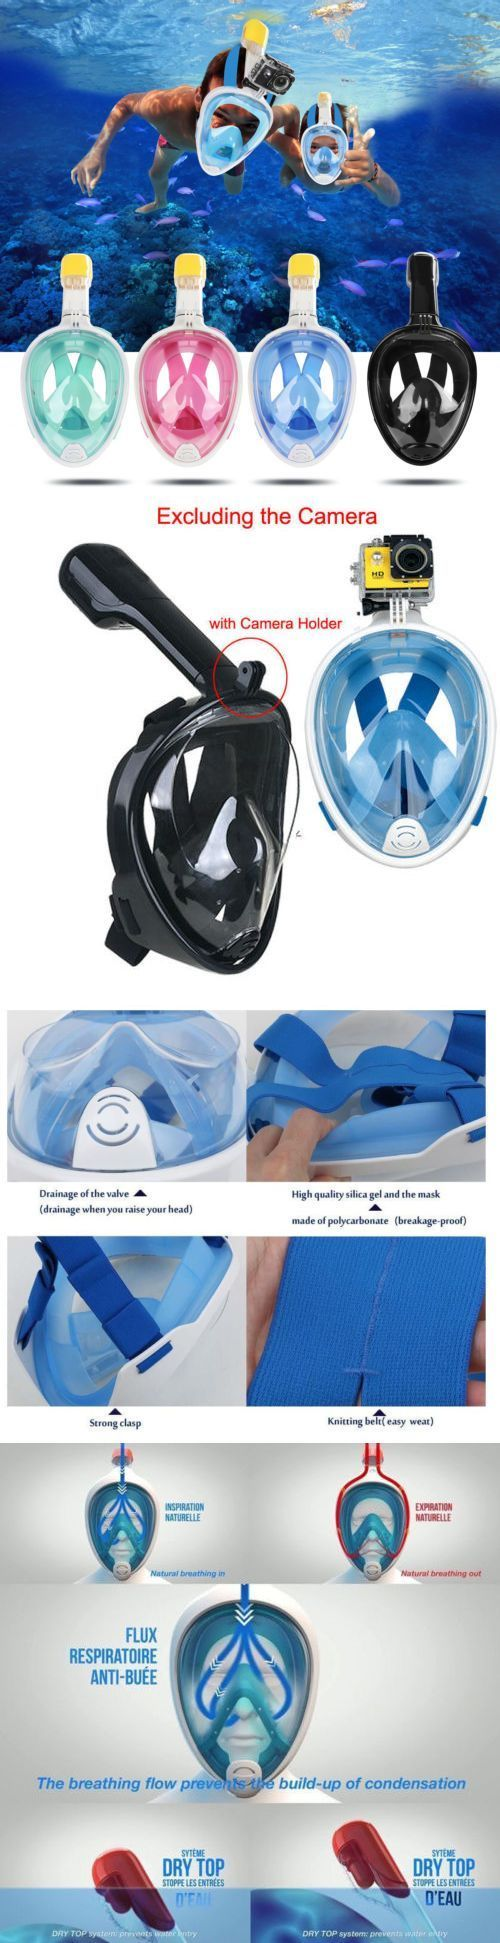 Masks 71161: Full Face Scuba Diving Mask Snorkel Swimming Goggles Breathing Underwater Tools -> BUY IT NOW ONLY: $49.99 on eBay! #scubadivingequipmentwatches